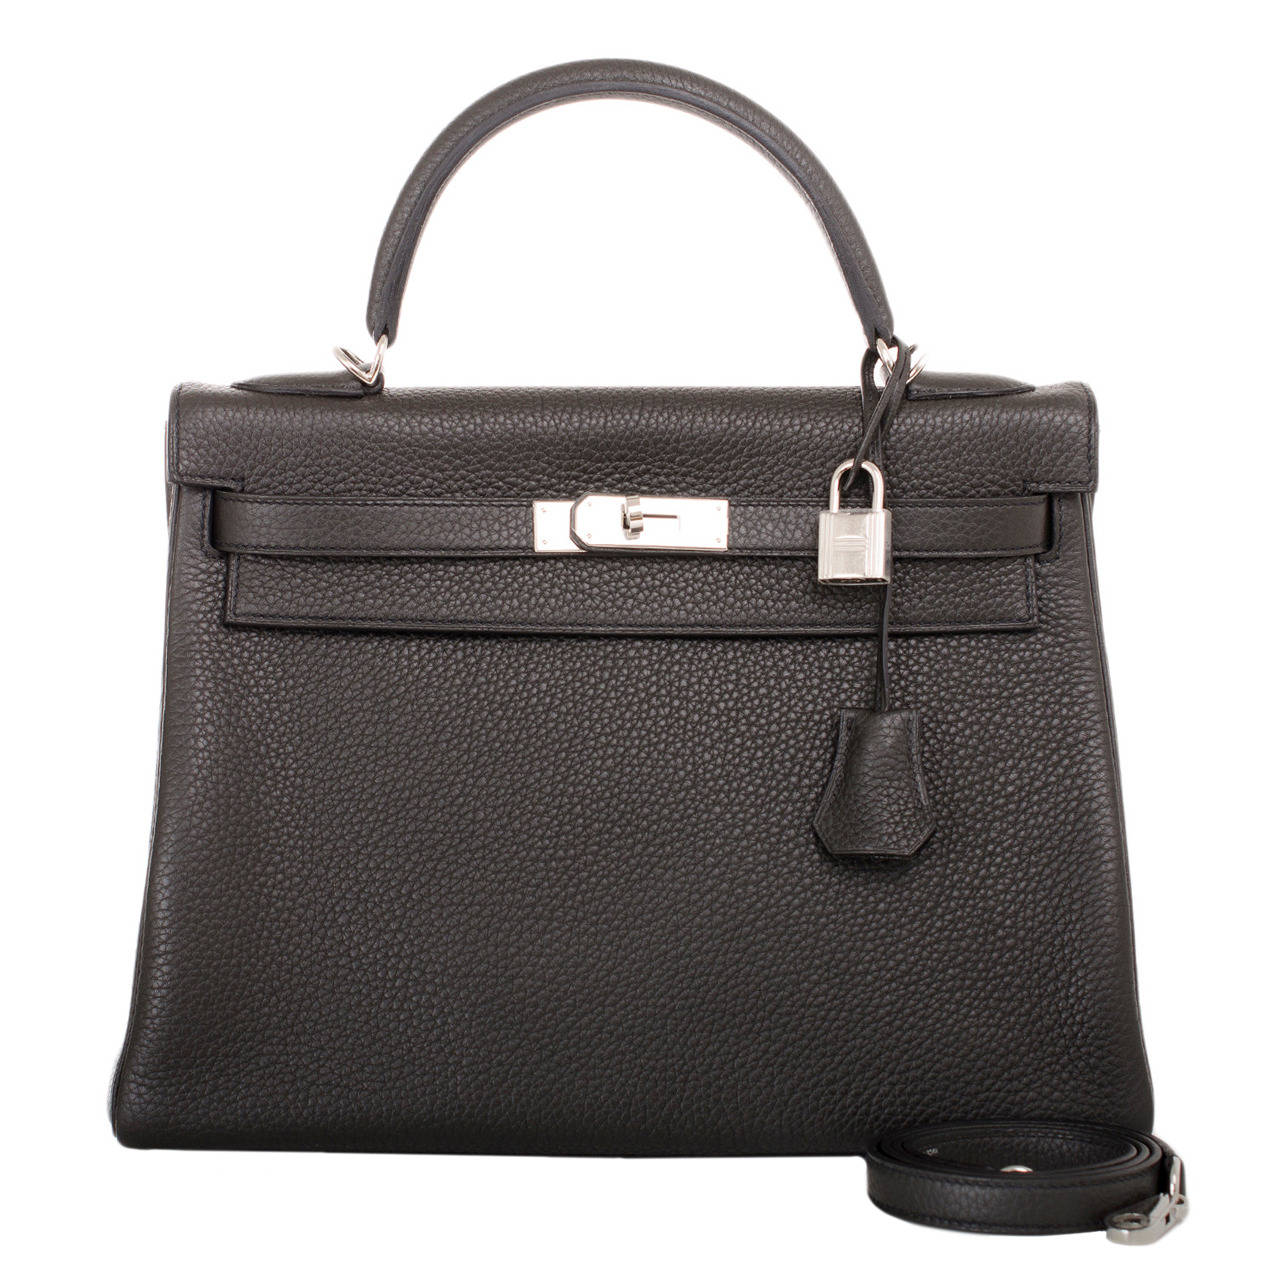 usl hermes luggage - Hermes Birkin Prices USA vs. Europe - PurseBop